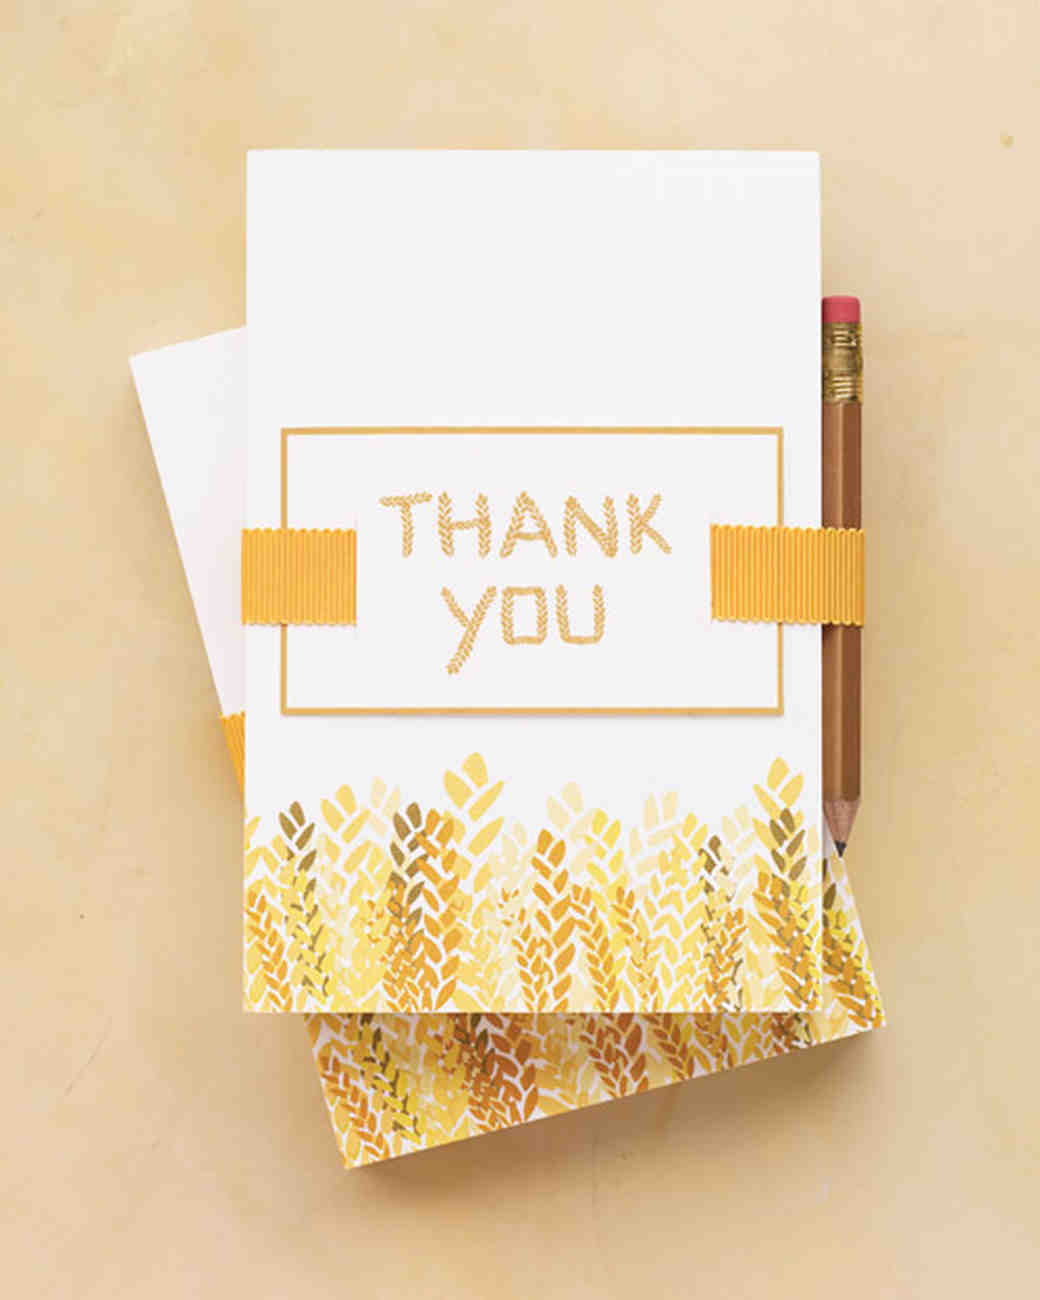 9 tips for writing thank you notes for wedding gifts martha stewart weddings